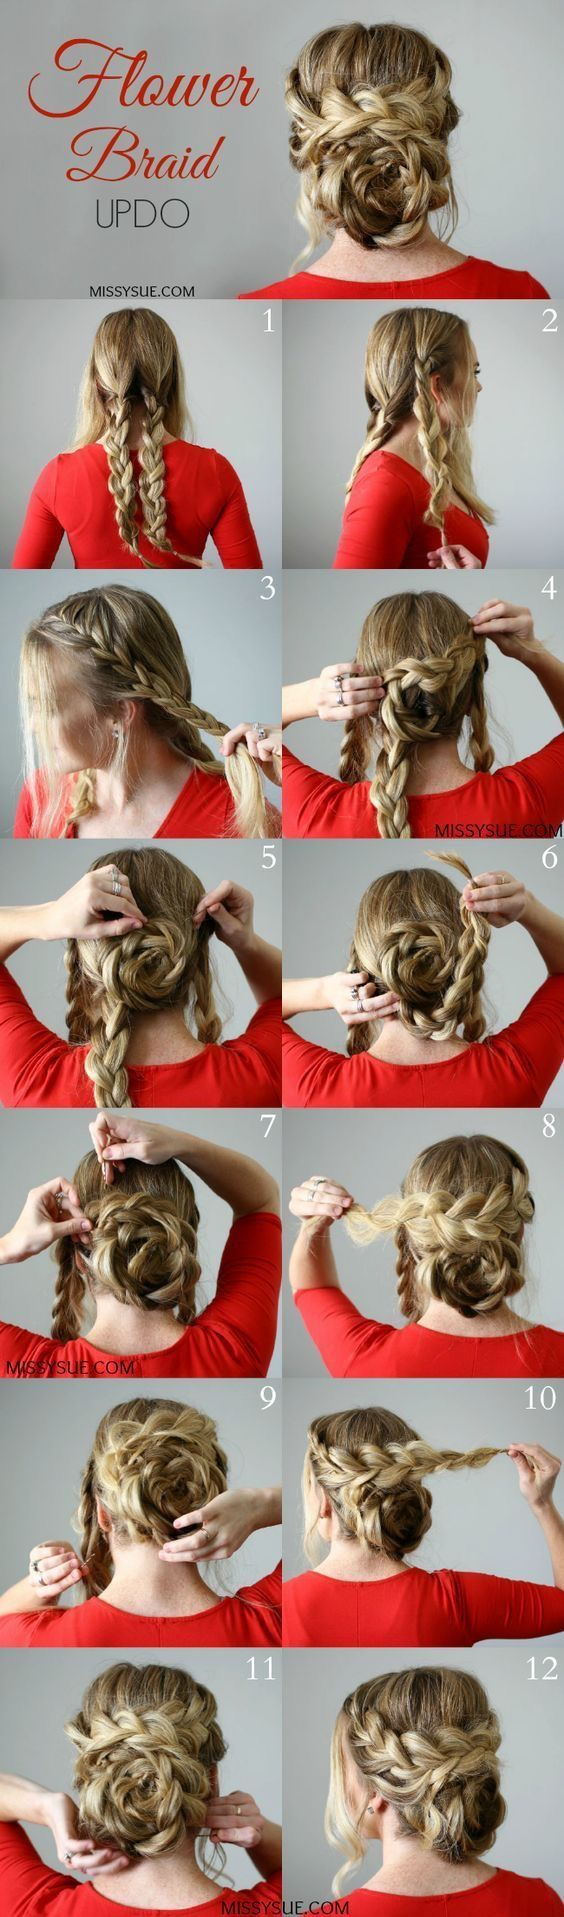 best images about hocok on pinterest prom hair wedding